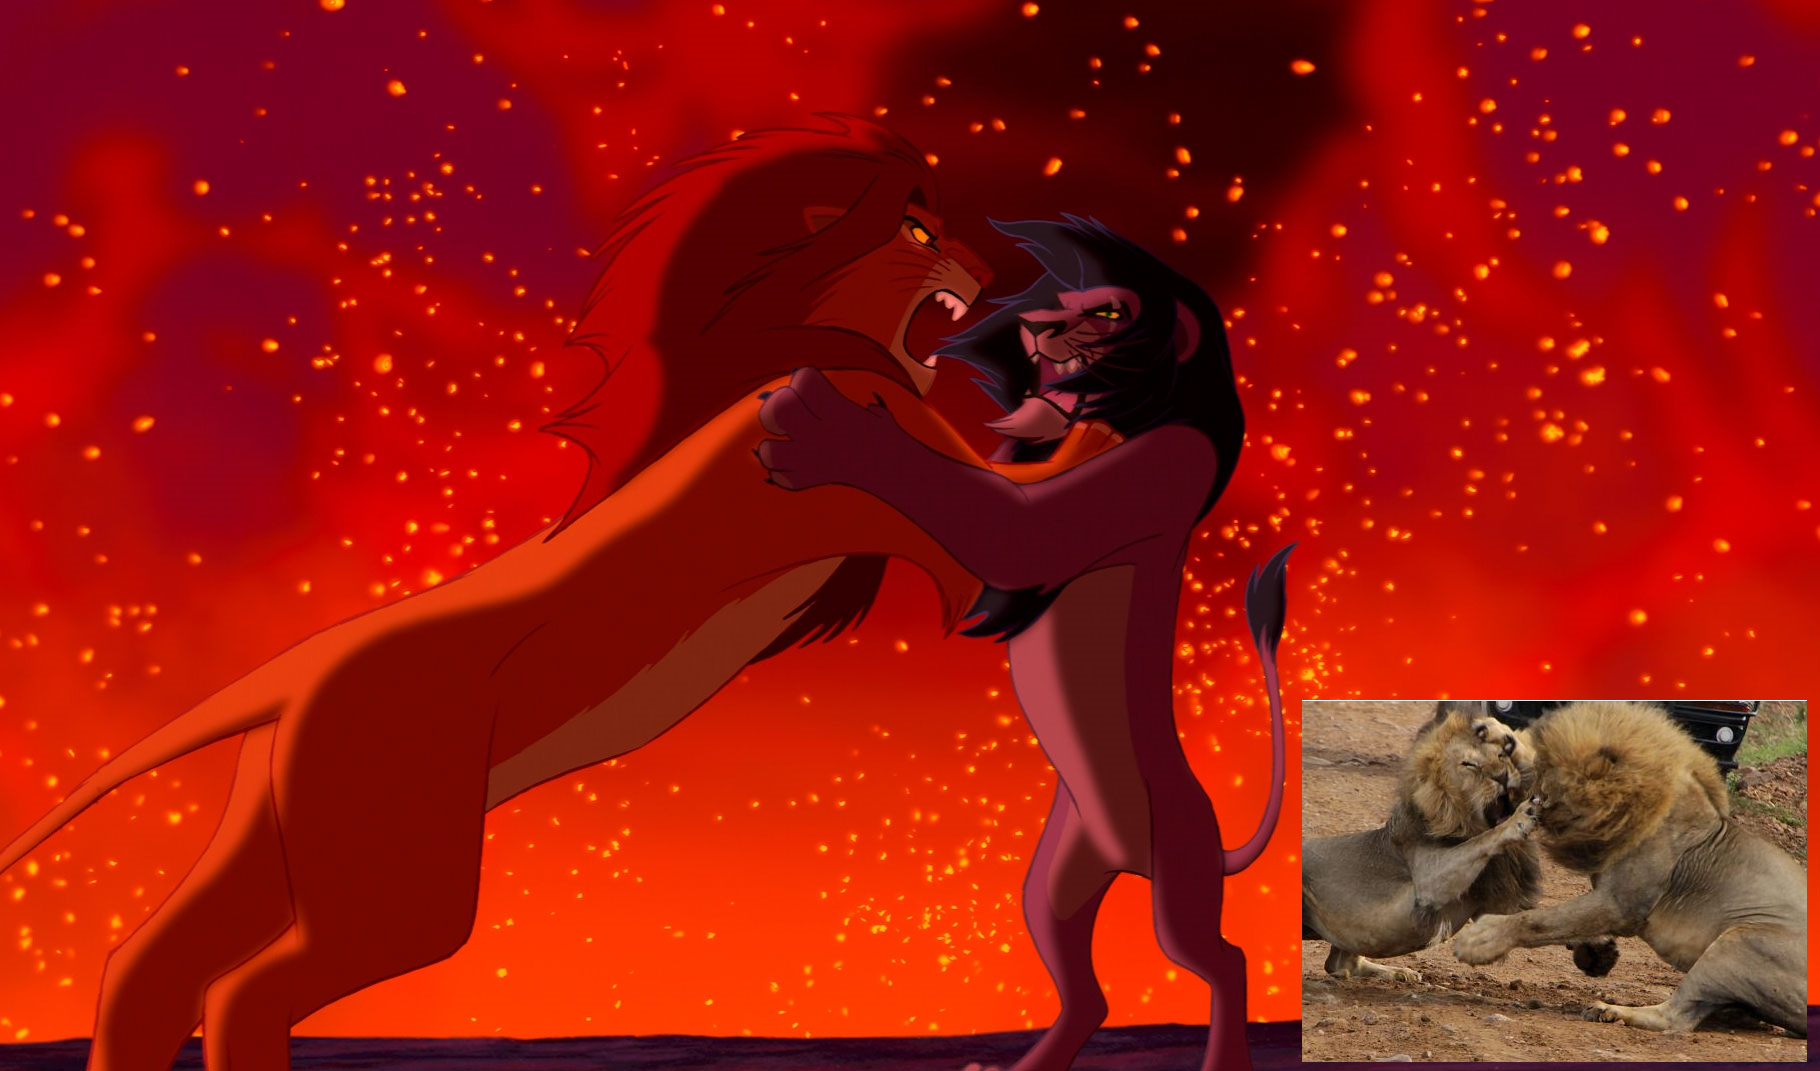 Simba fights Scar